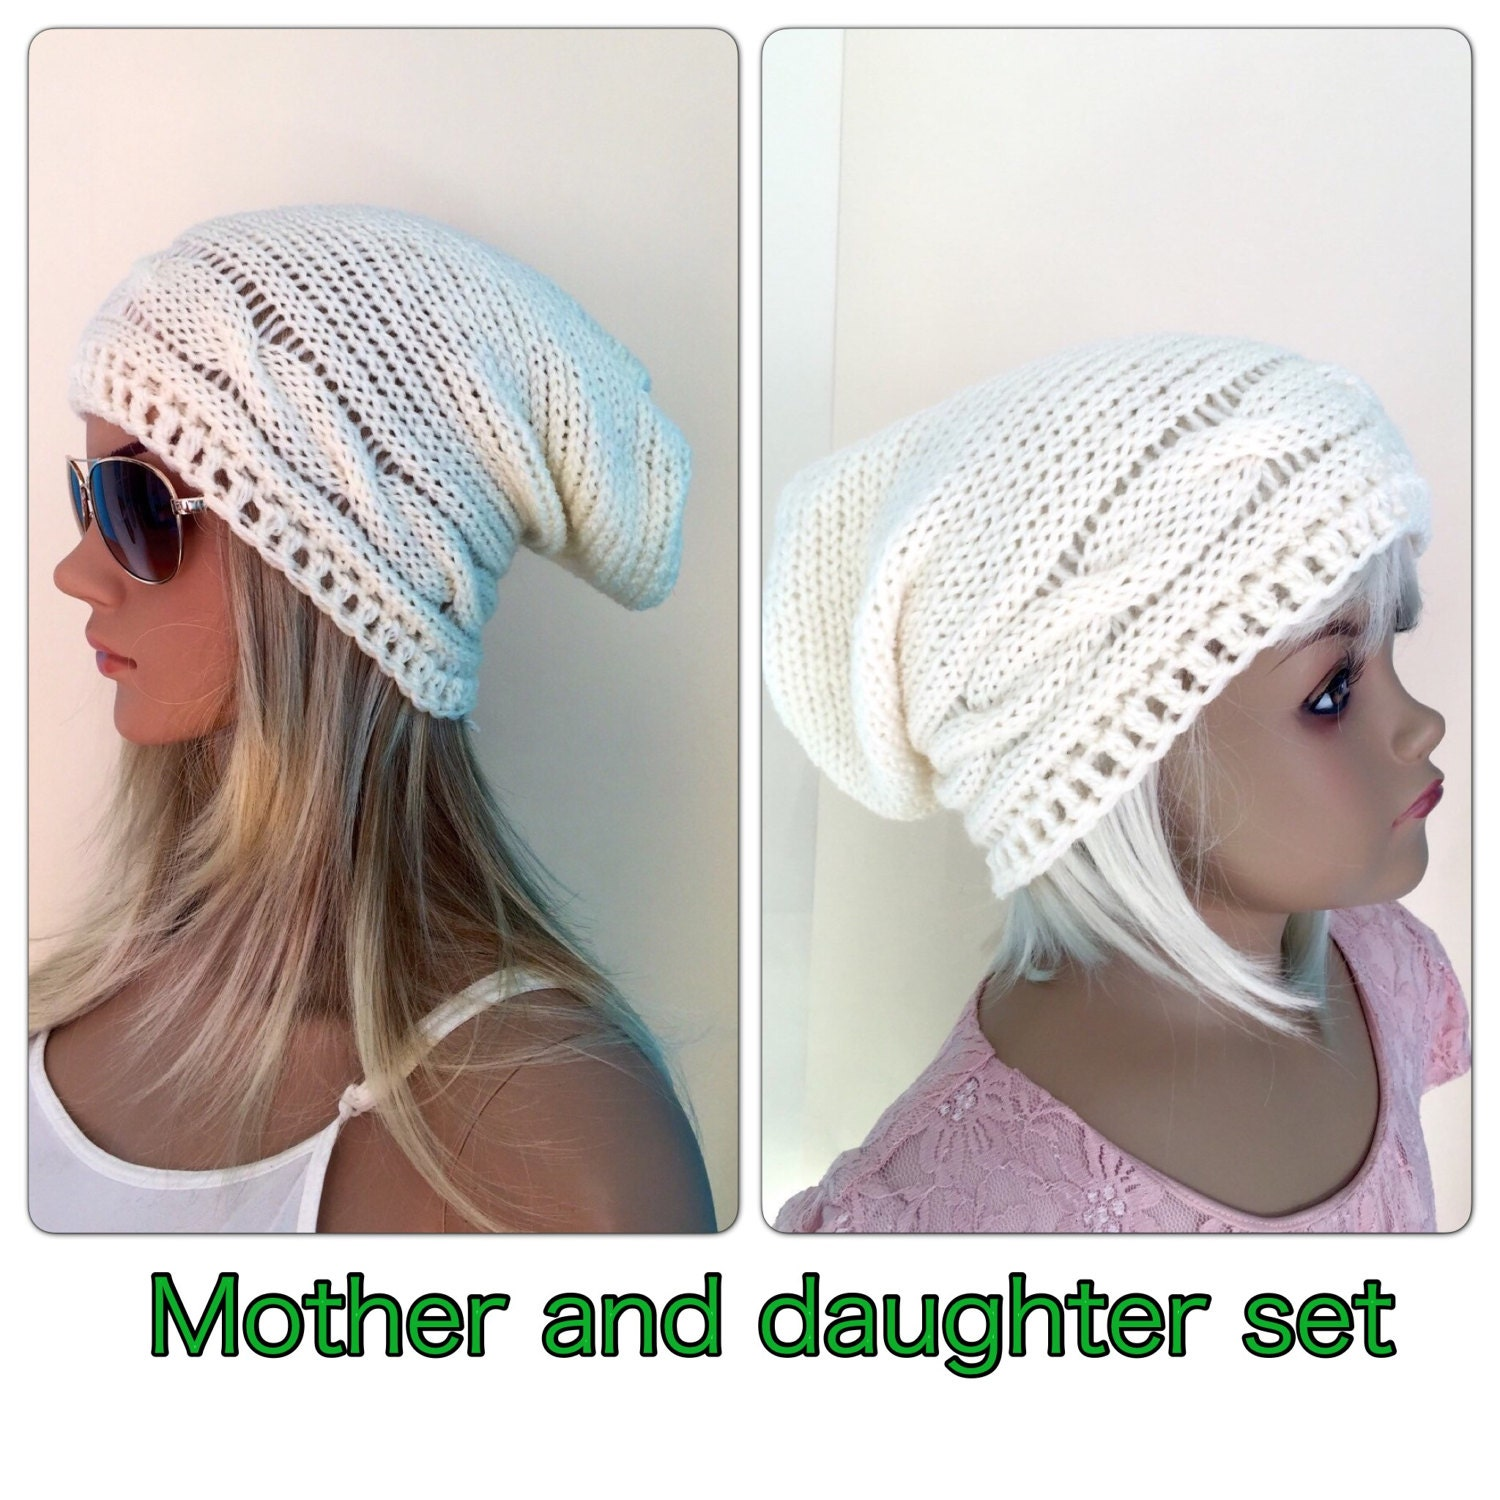 e54eae830d0 MOTHER and DAUGHTER set crocheted knitted hippie Slouch beanie grey cables  unique designer kids adult child sets matching hats sisters